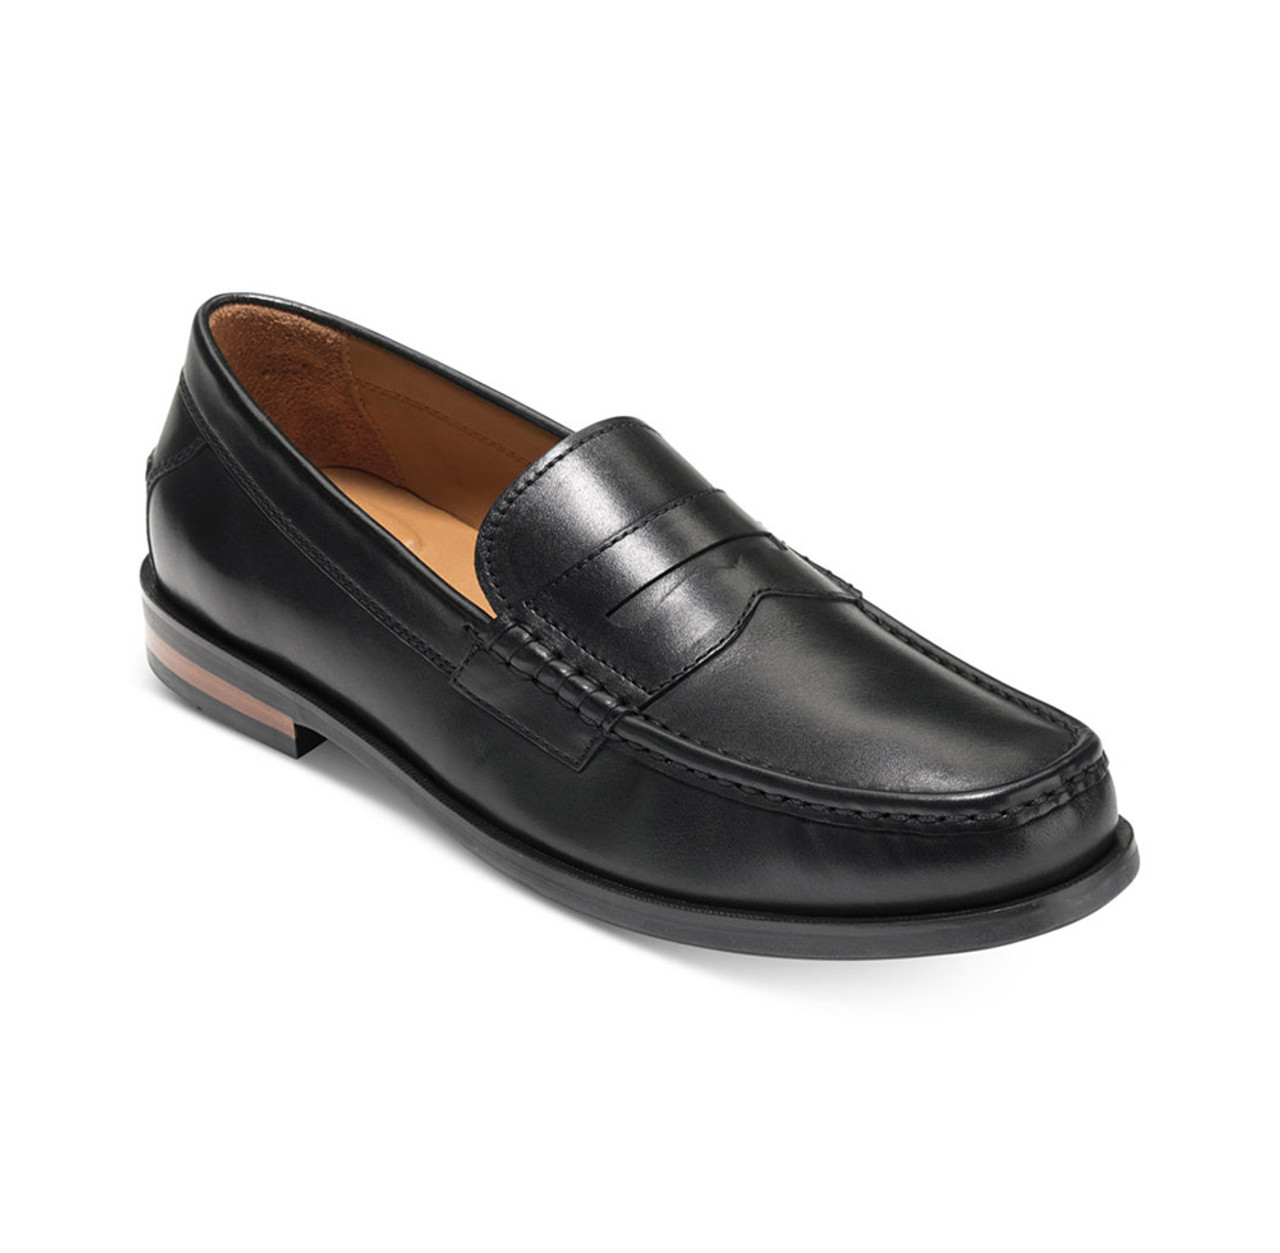 0ebb24c6314 Cole Haan Men s Pinch Friday Contemporary Penny Loafer Black Handstain -  Shop now   Shoolu.